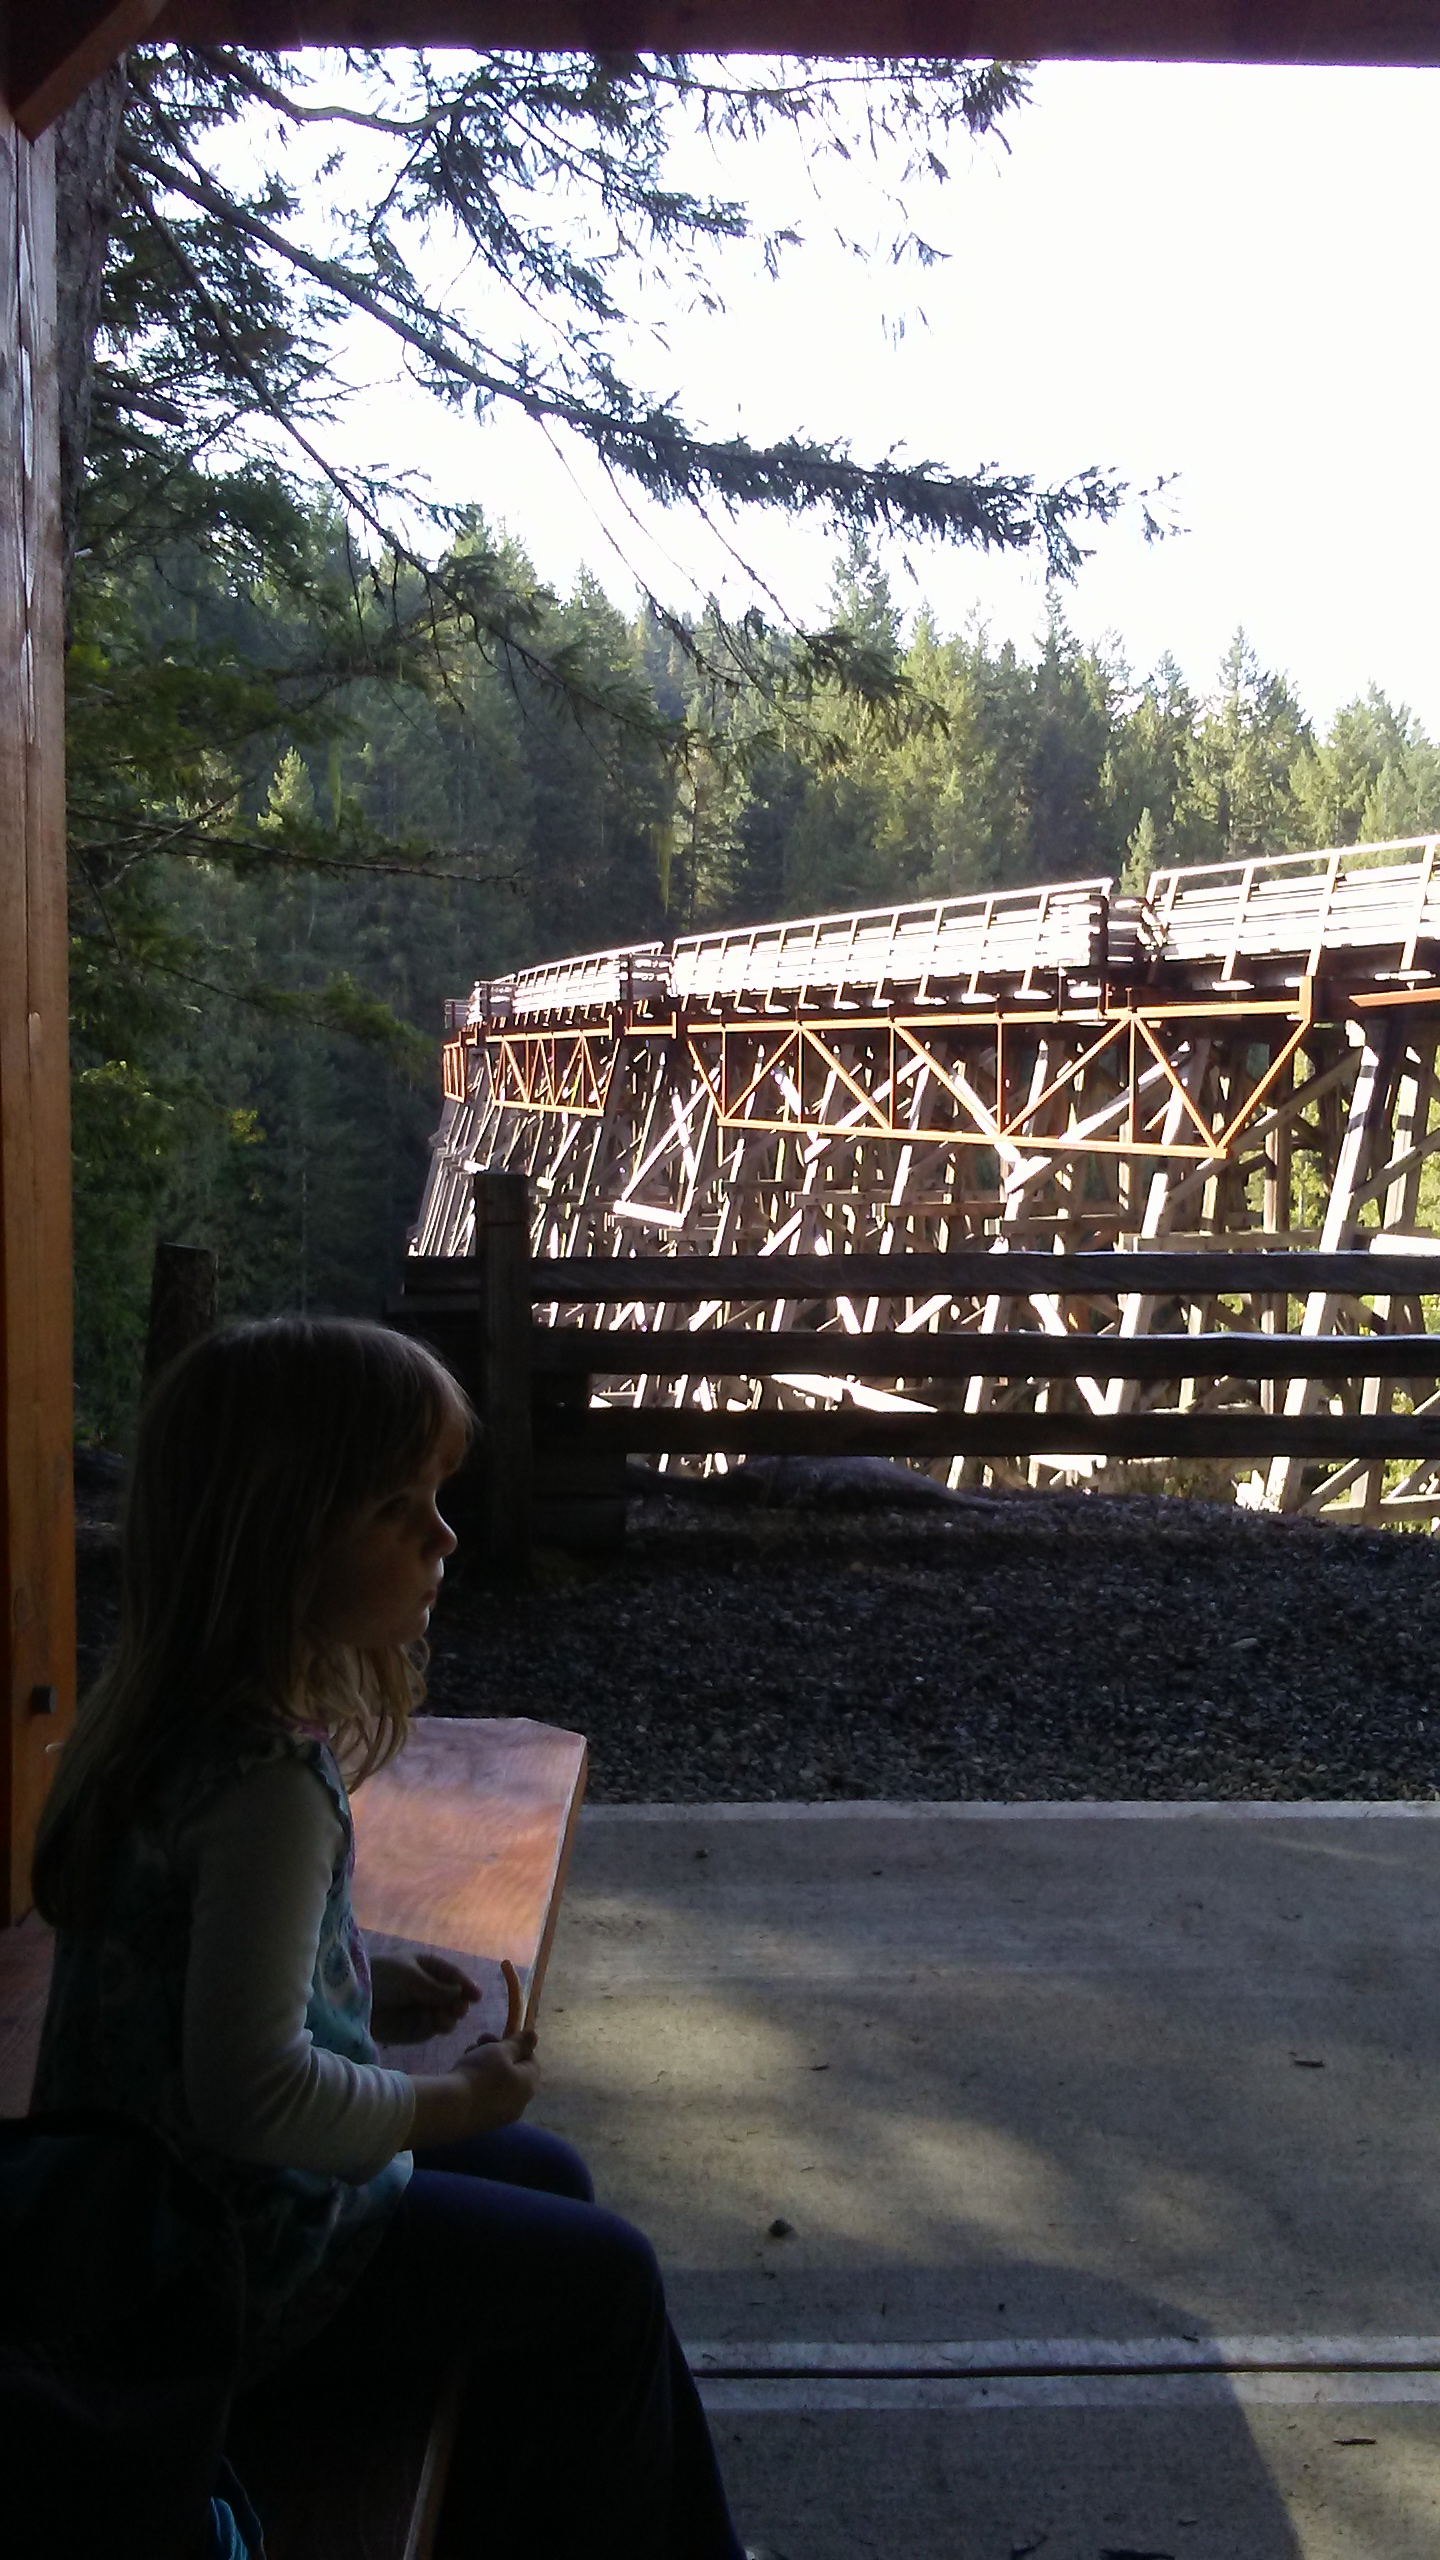 Molly at the Trestle Rest Stop